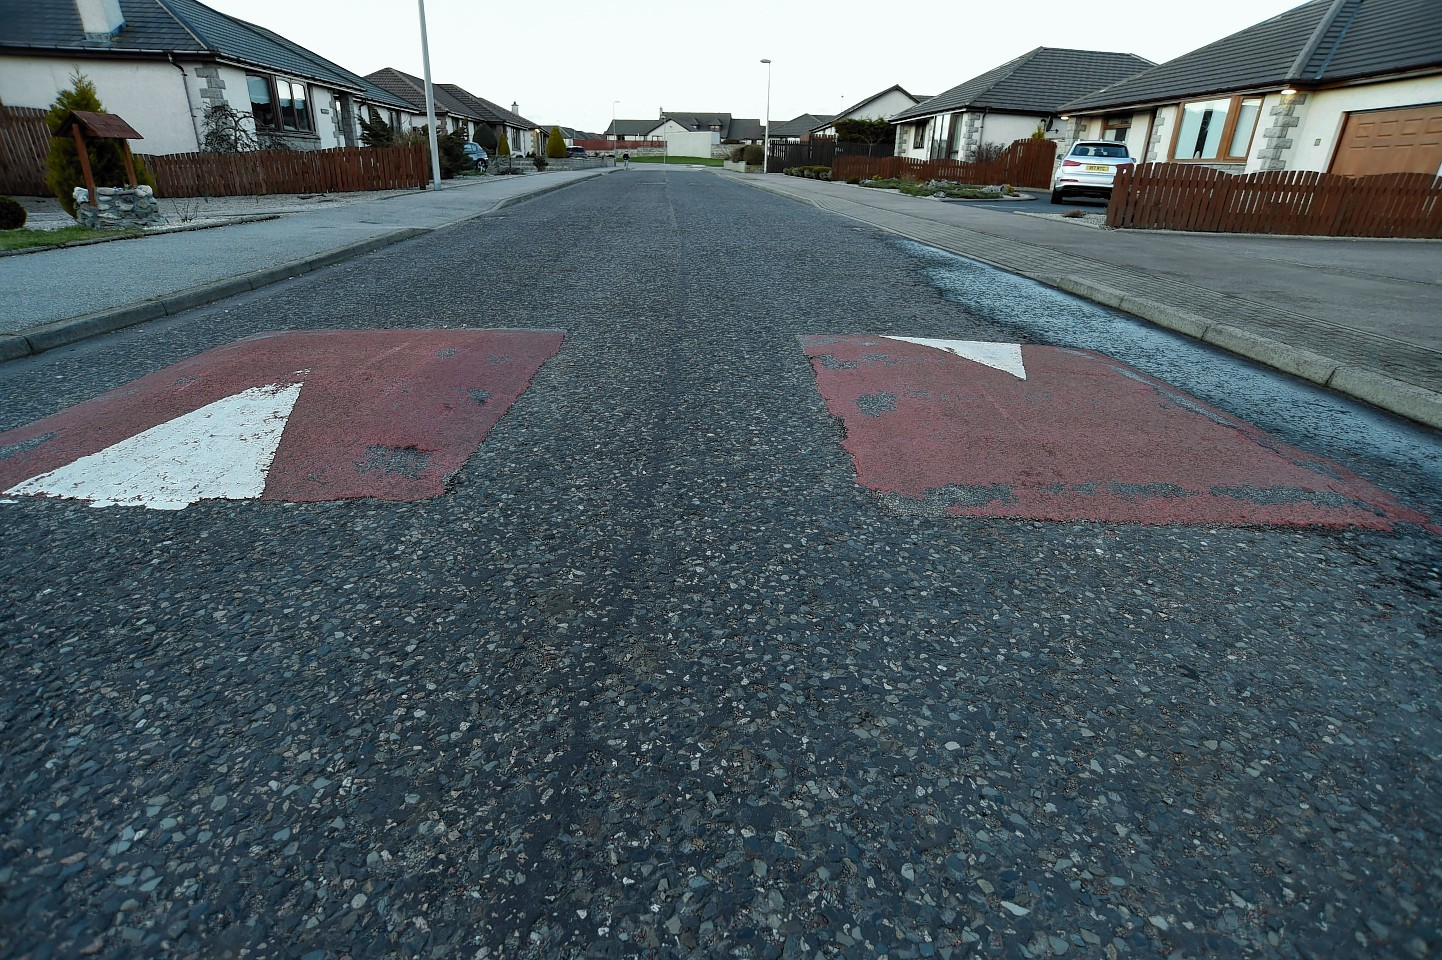 Robbie's Road in Fraserburgh